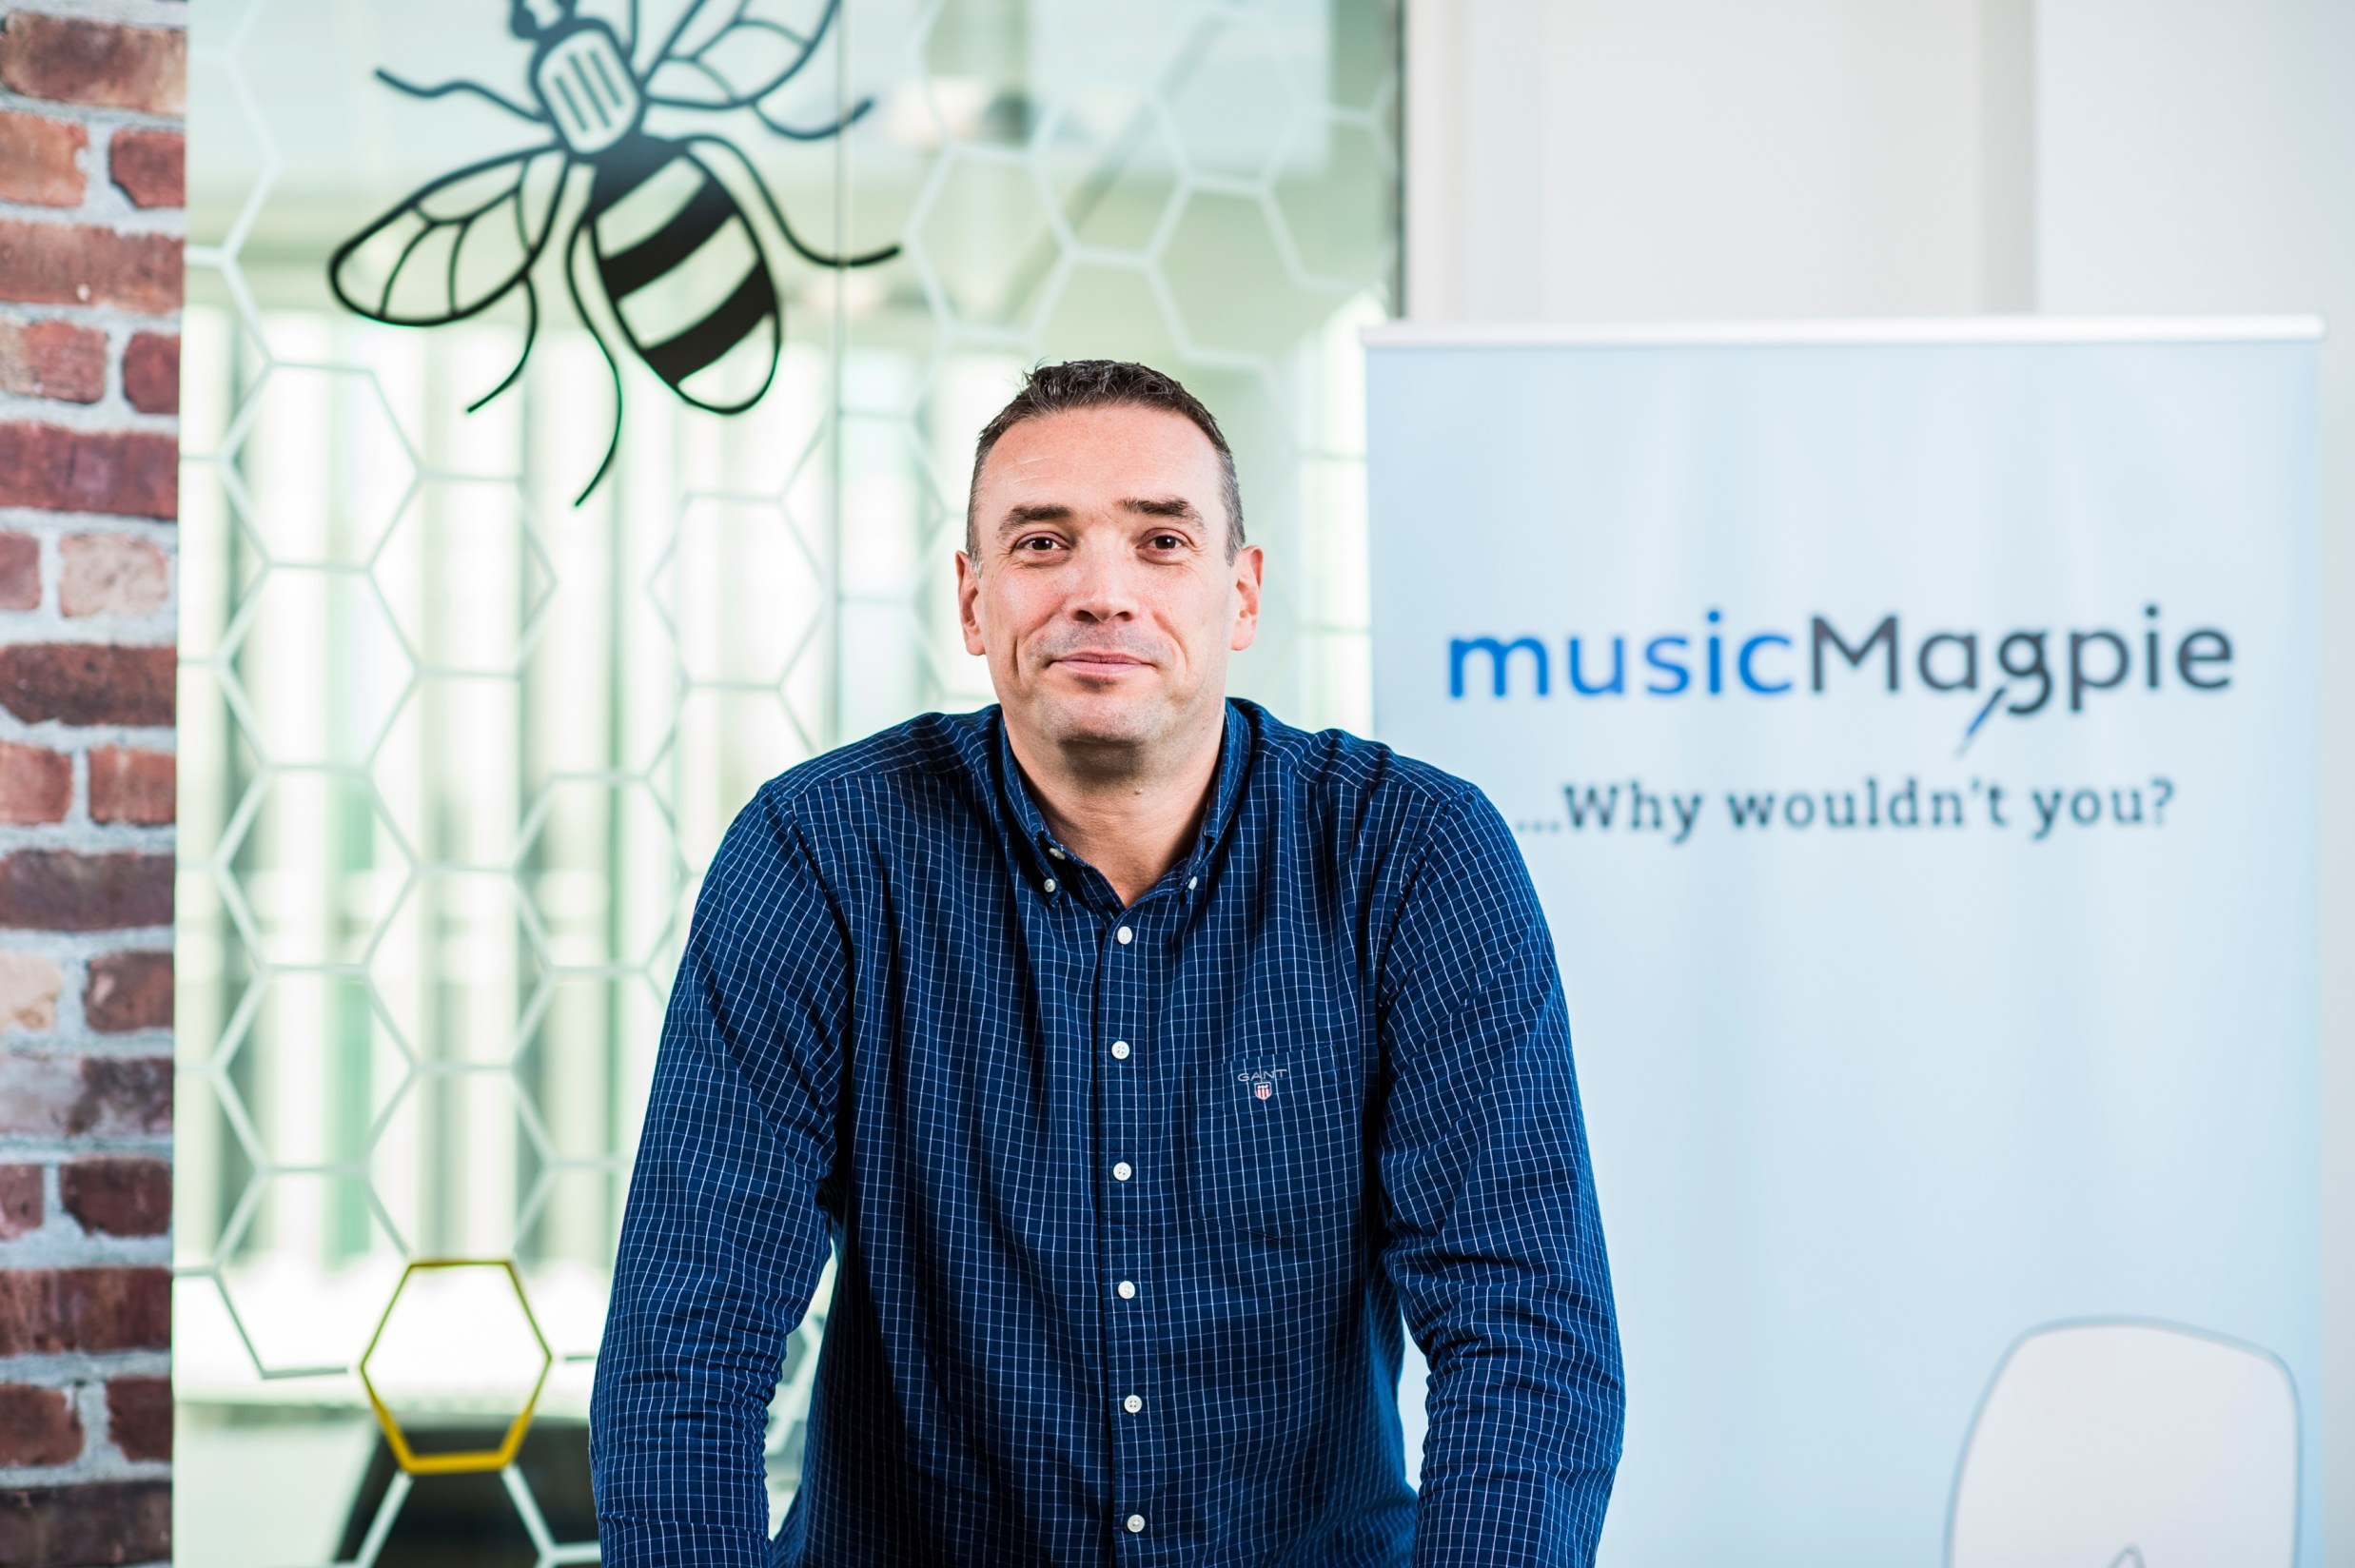 Music Magpie CEO Steve Oliver